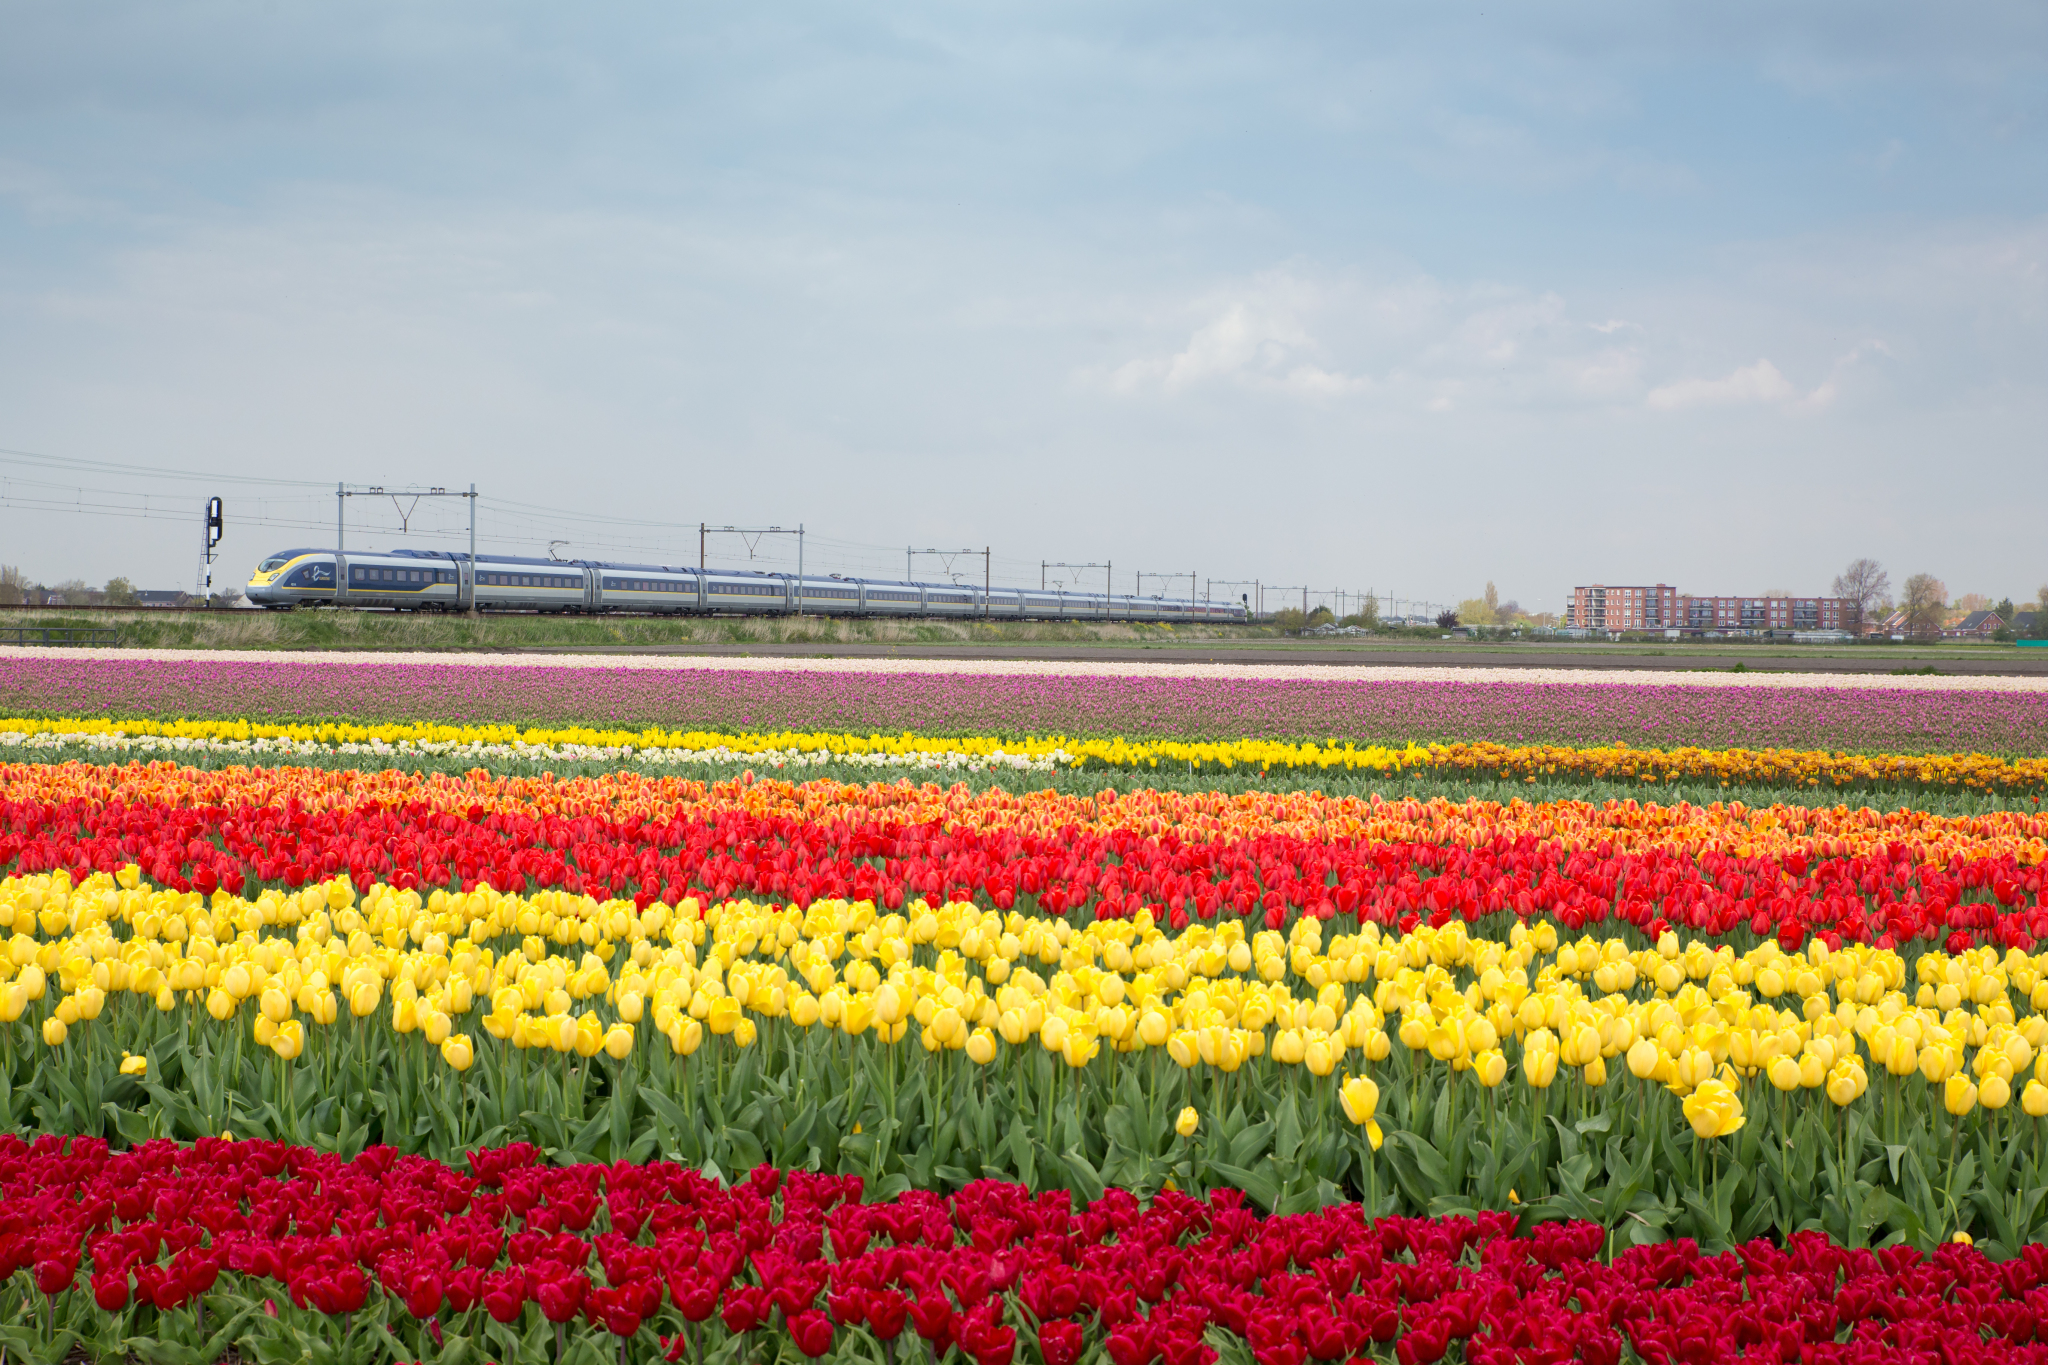 From April 4th You'll Be Able to Travel Direct from London to Amsterdam via Eurostar